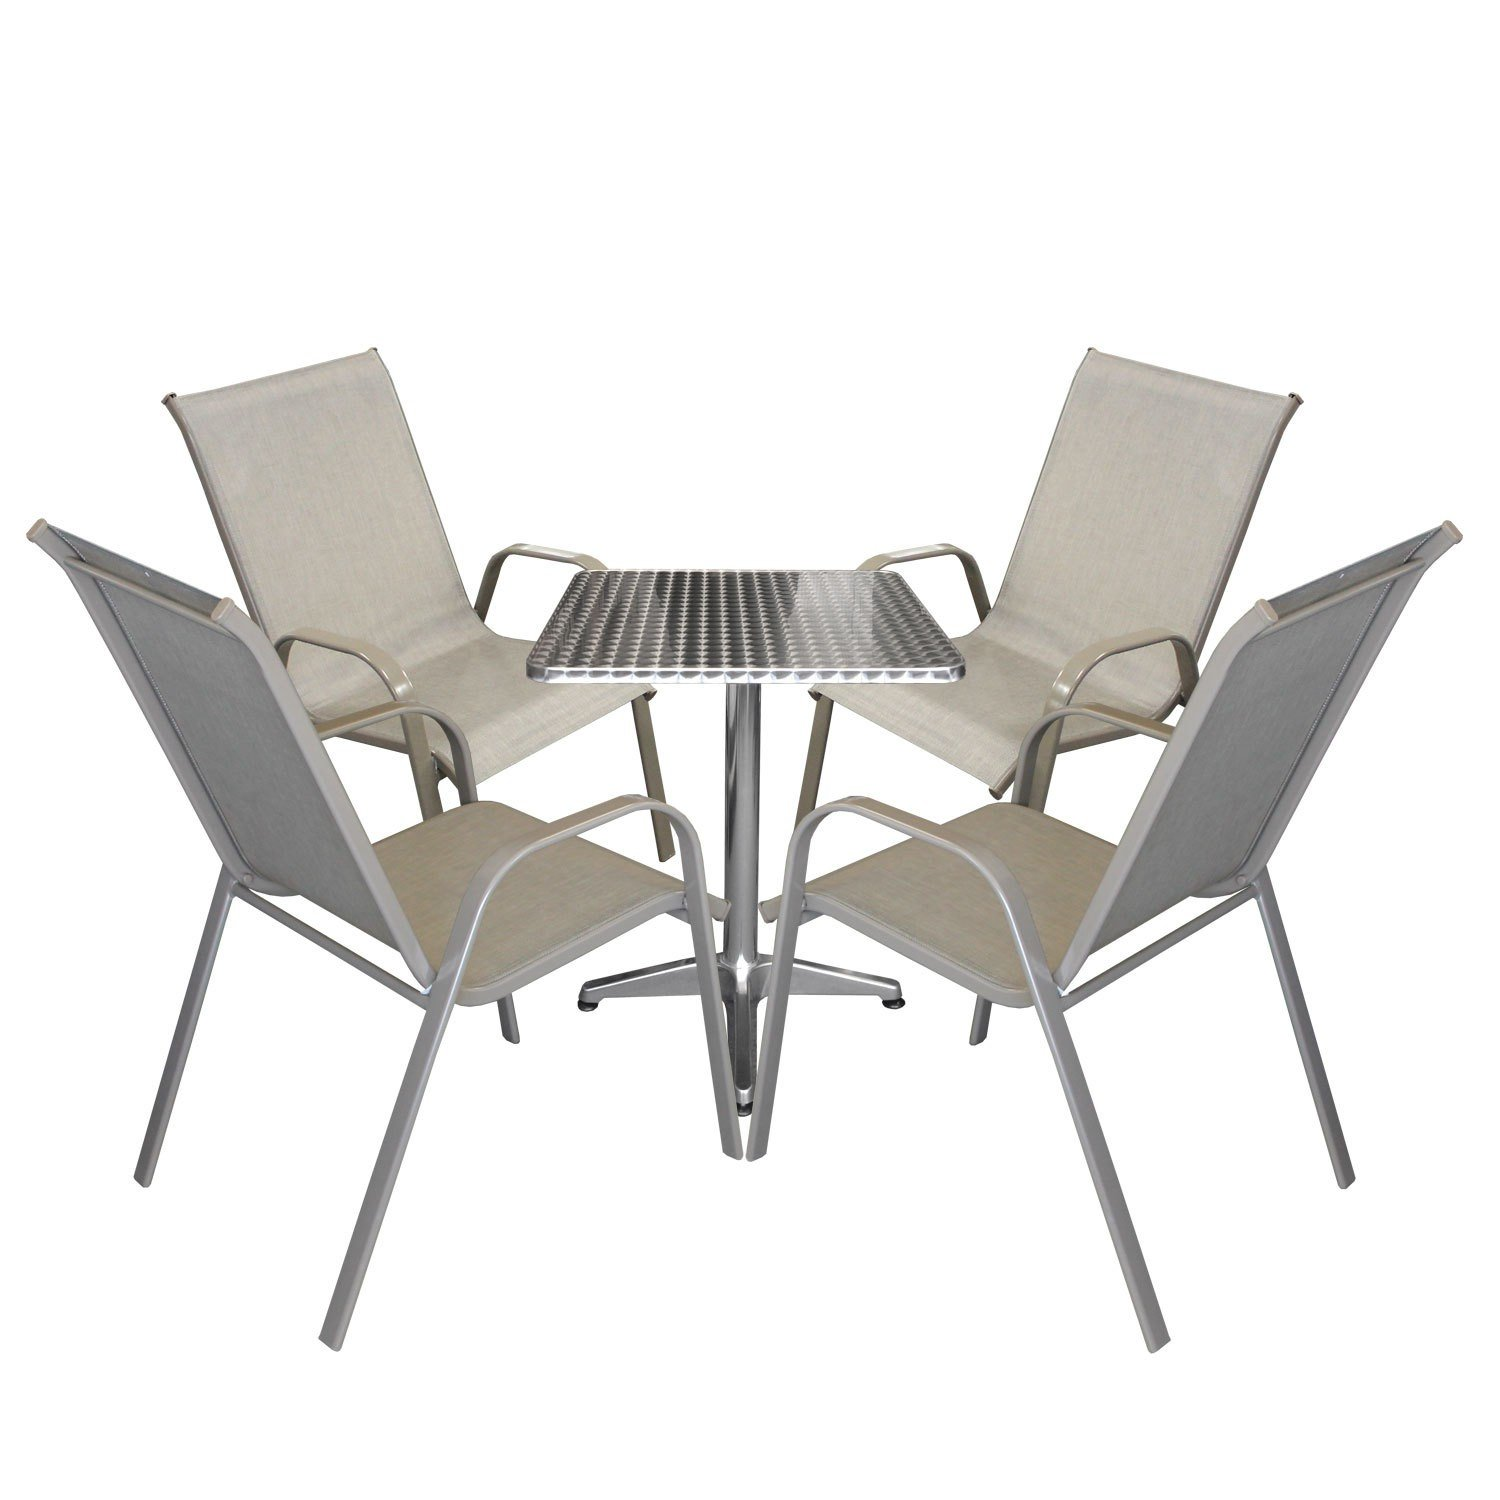 5tlg bistrogarnitur bistro set balkonm bel aluminium bistrotisch 60x60x70cm gartenstuhl. Black Bedroom Furniture Sets. Home Design Ideas